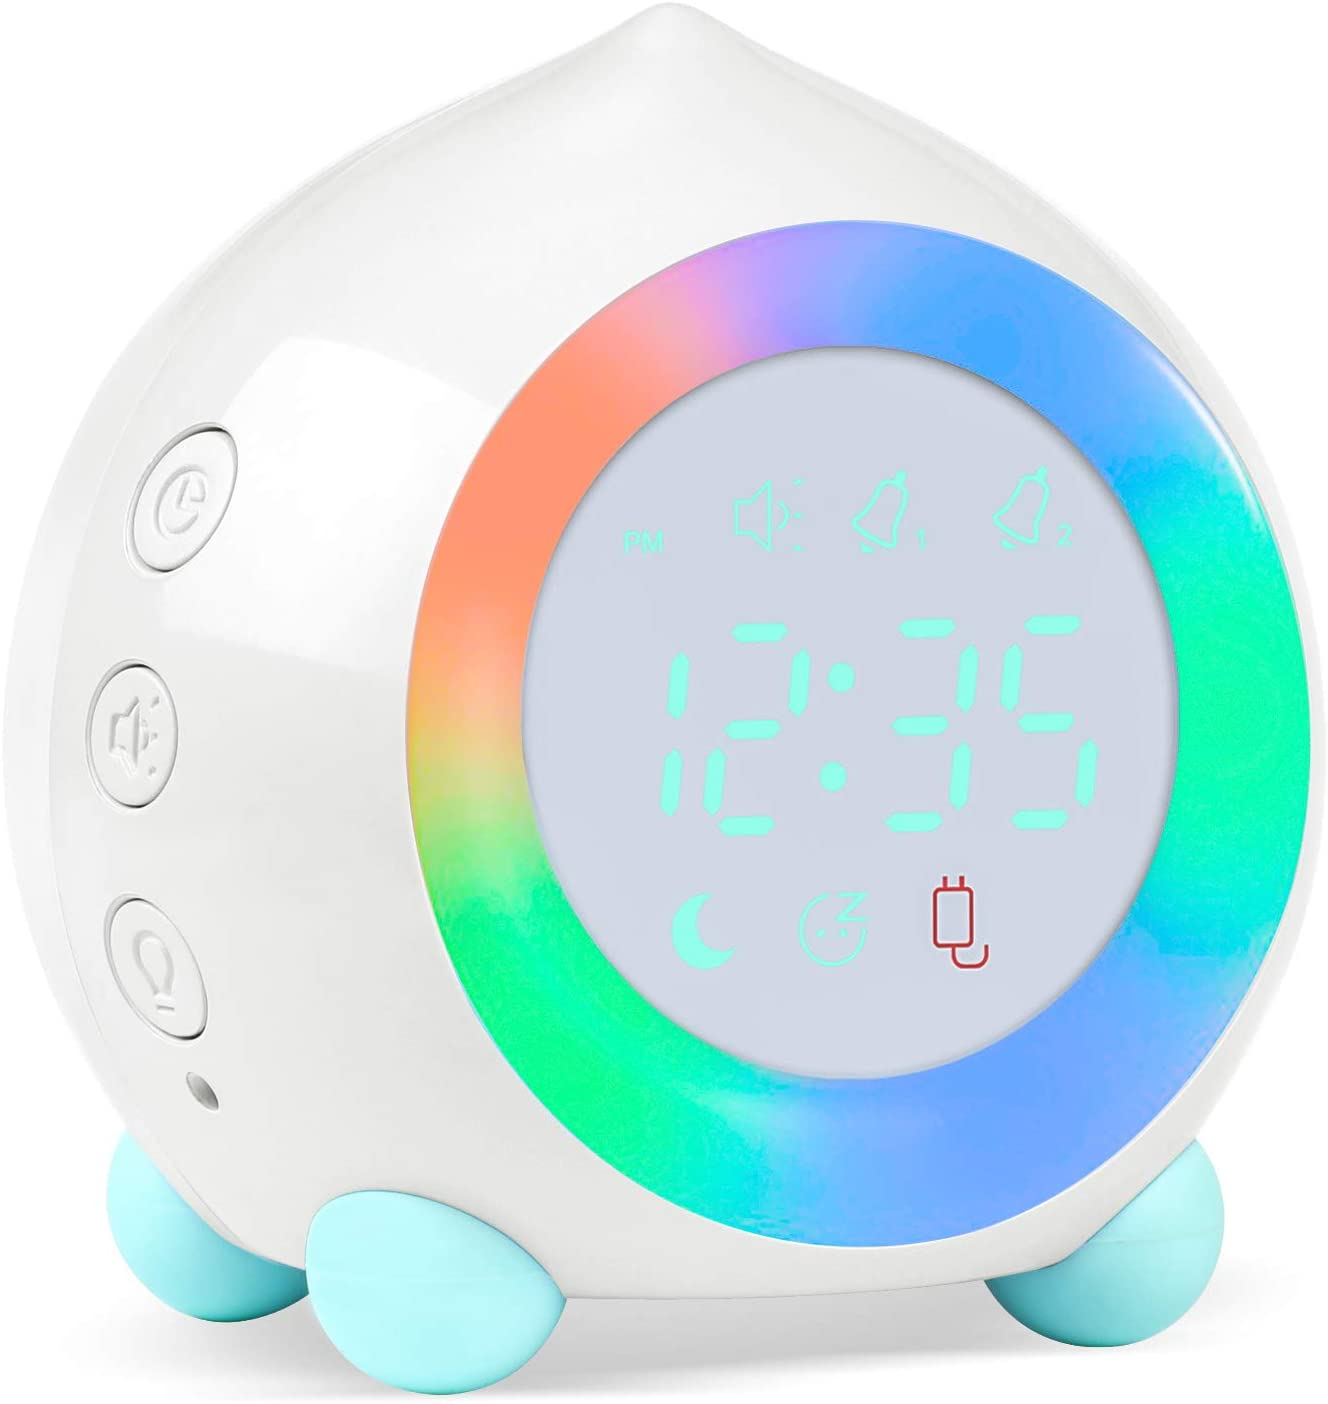 Alarm Clock Digital for Kids Sunrise Simulator Alarm Clock Bedside Mains Powered for Girls Boys Bedroom with LED Wake Up Light & Night Light Lamp Silent Alarm Clock (White)